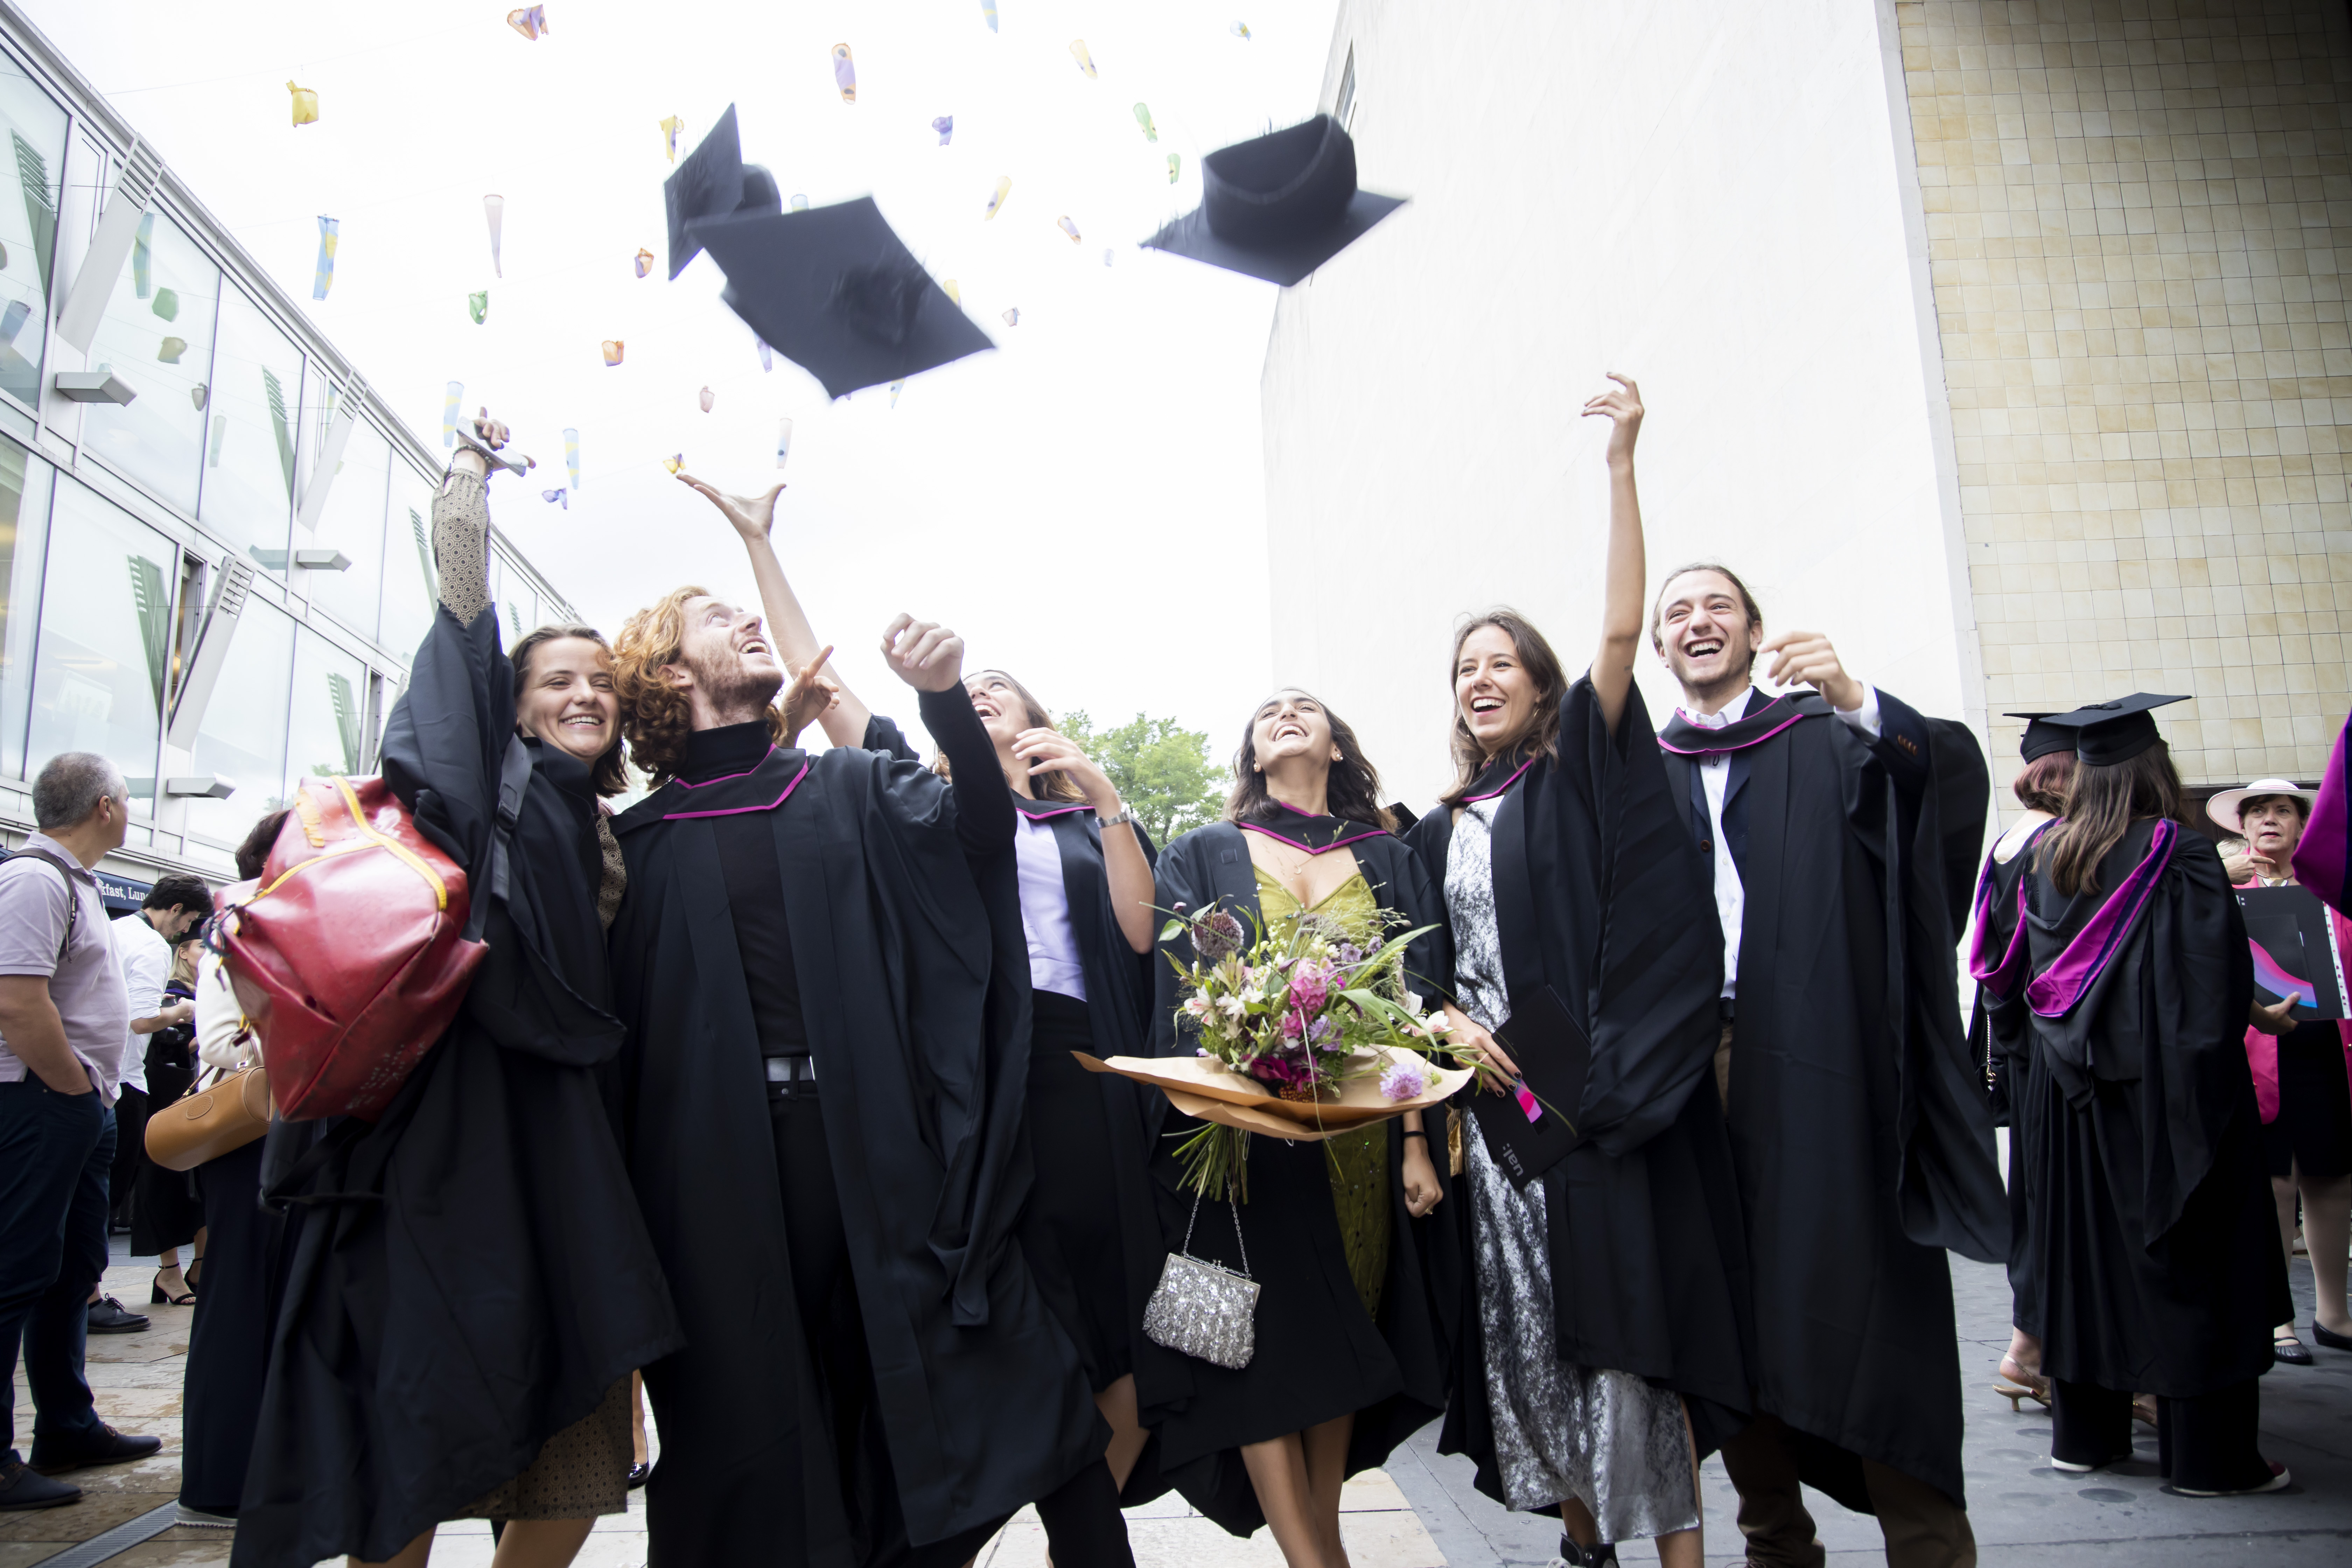 Student throwing mortarboards into the air